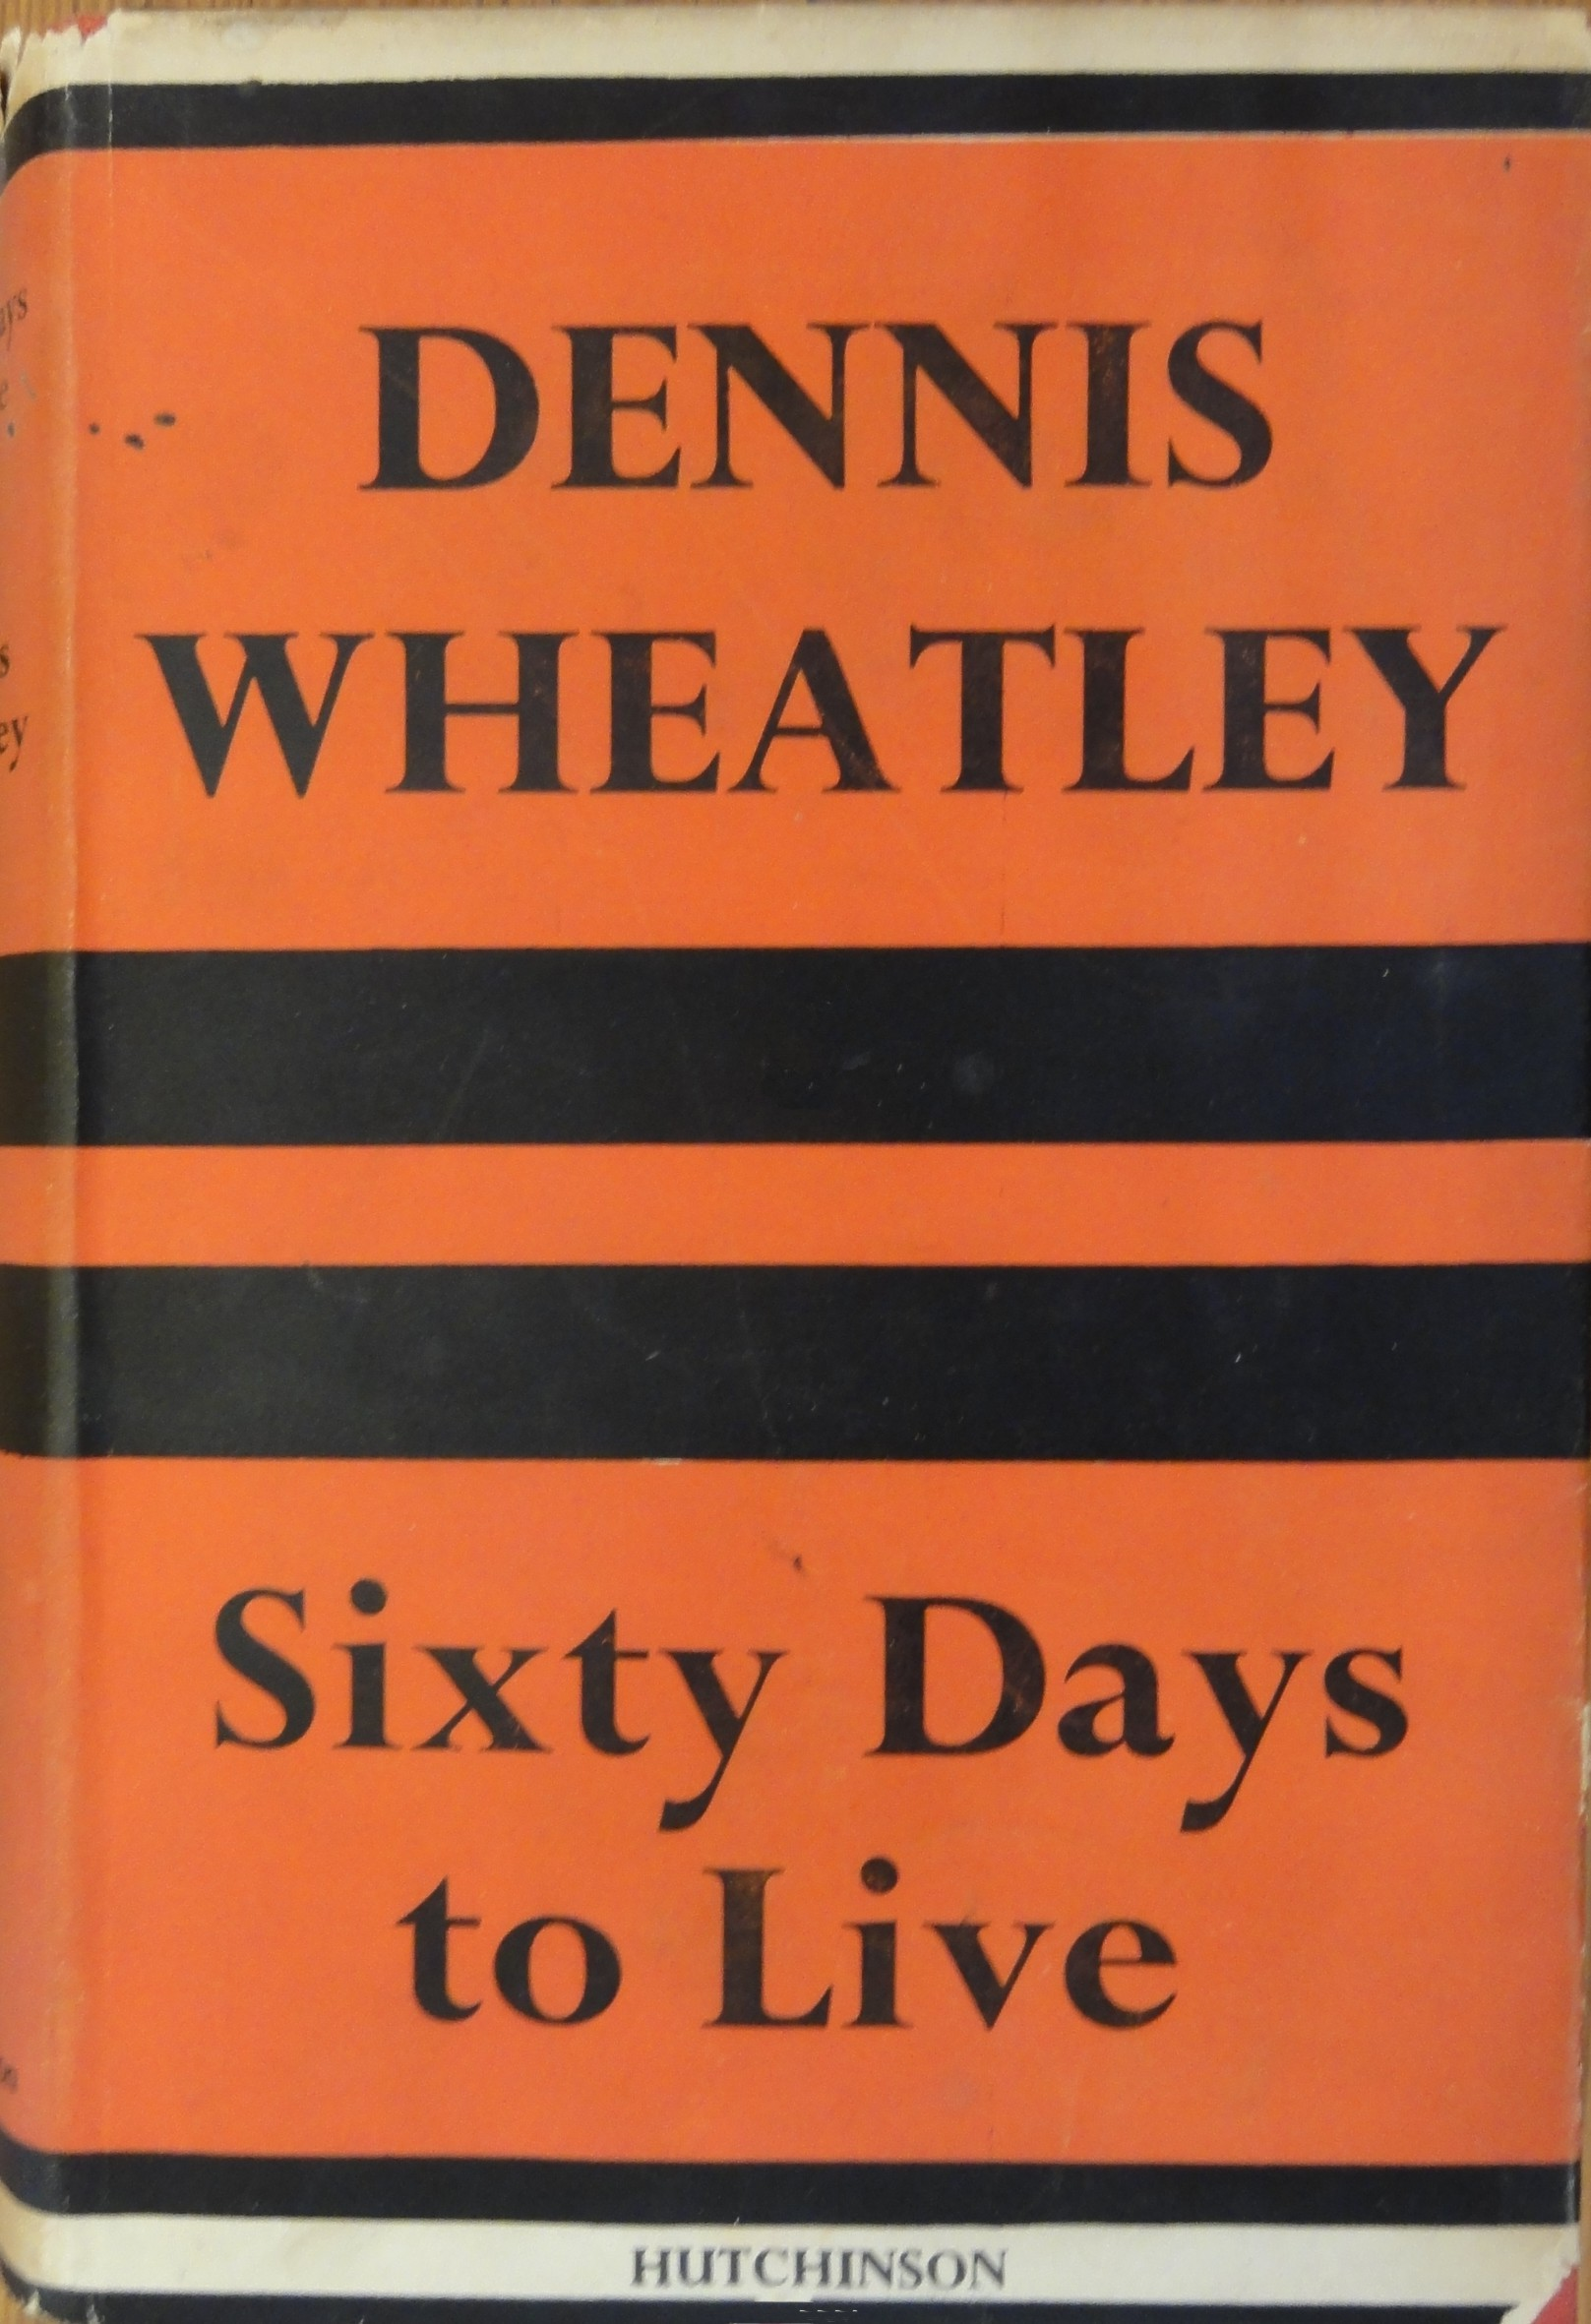 (1950 reprint cover for Sixty Days To Live)